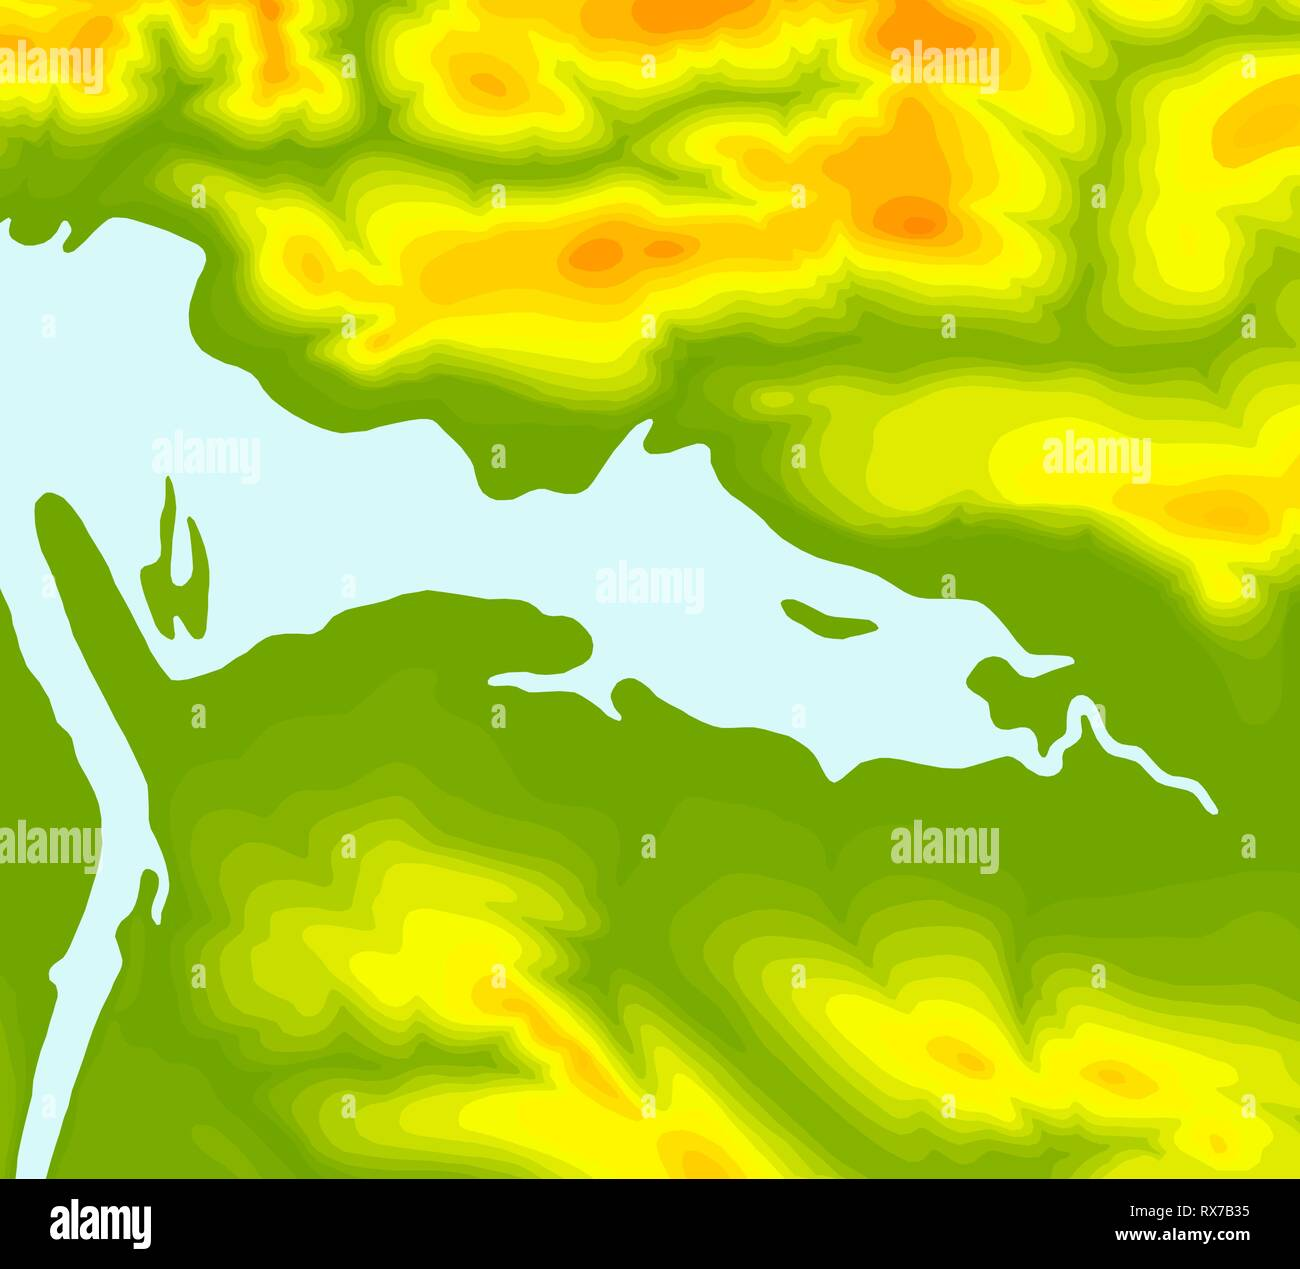 Topographic map contour background. Topo with elevation. Contour vector. Geographic World Topography map grid abstract vector illustration - Stock Image